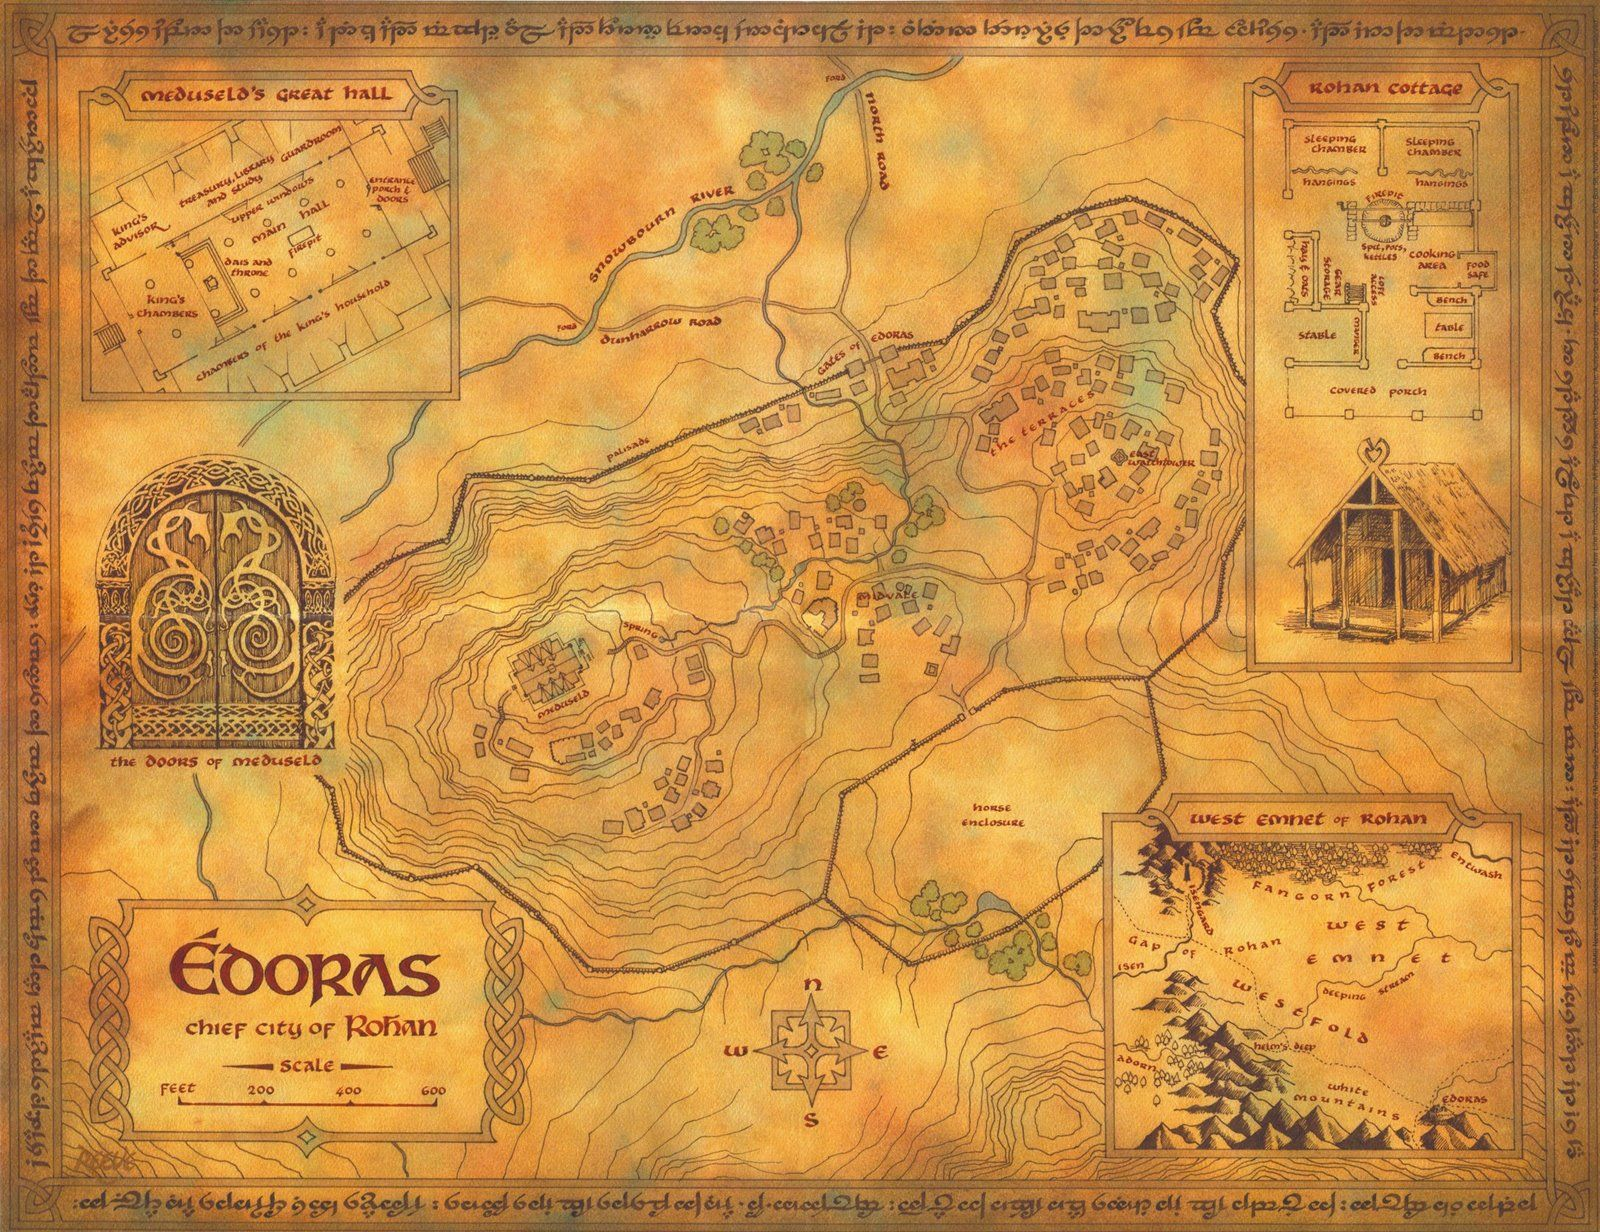 map of Edoras in Rohan from the Lord of the Rings by JRR Tolkien